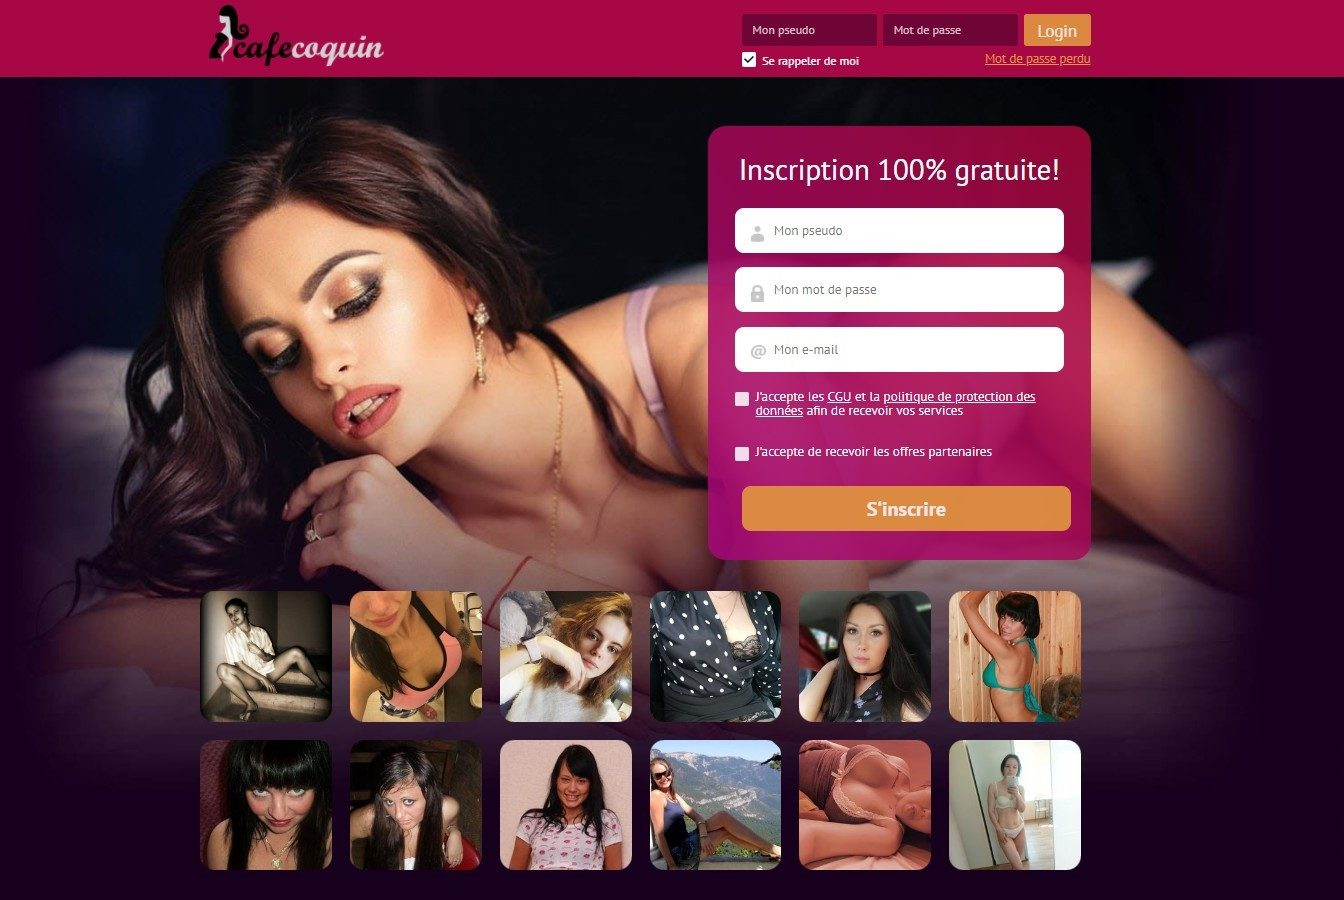 cafecoquin page accueil